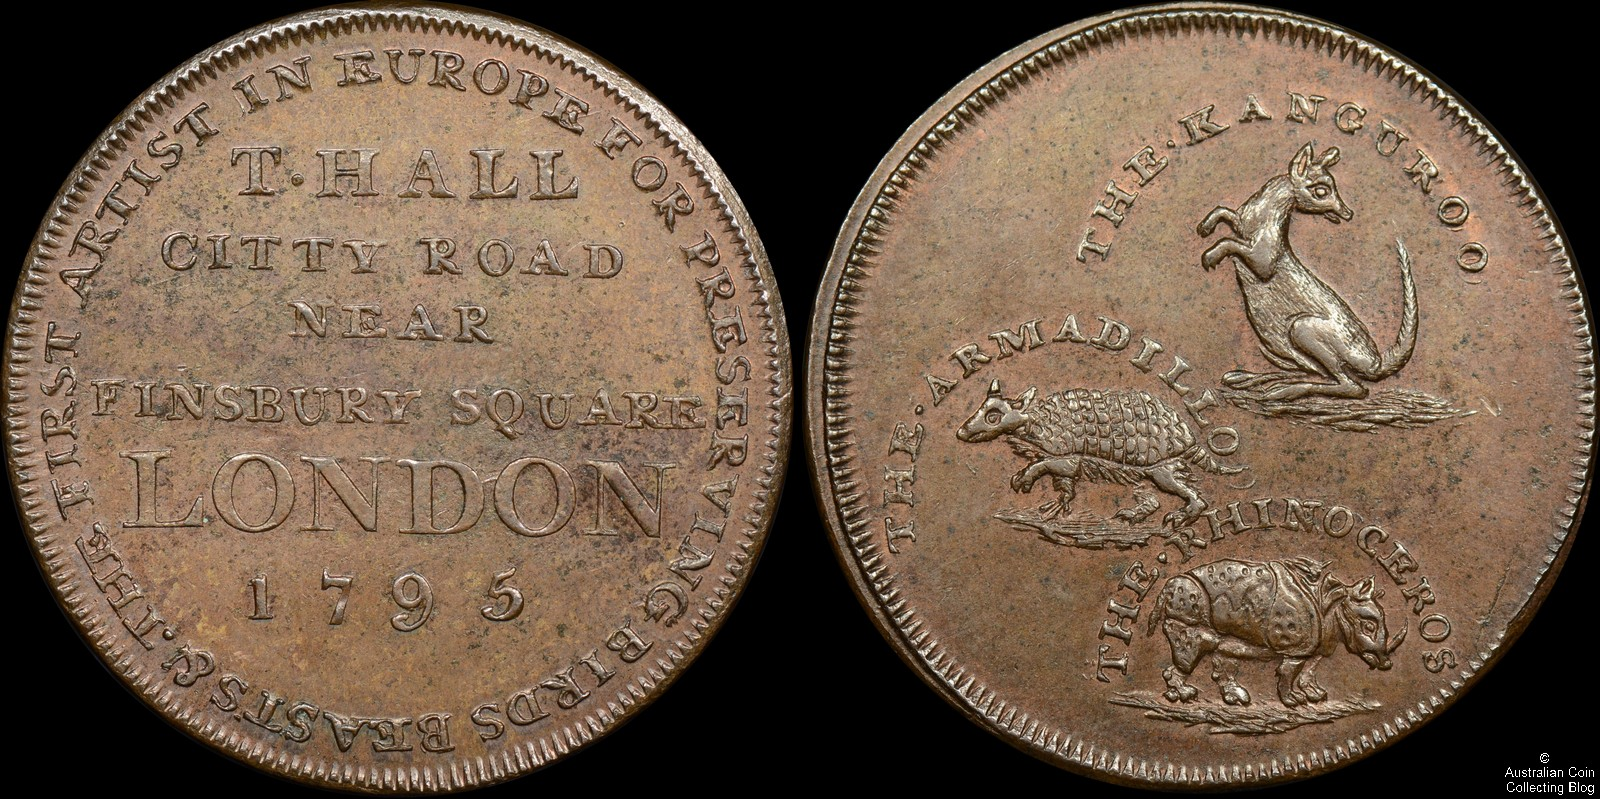 1795 Middlesex Penny T.Hall Zoo Token D&H 25 PCGS MS63BN